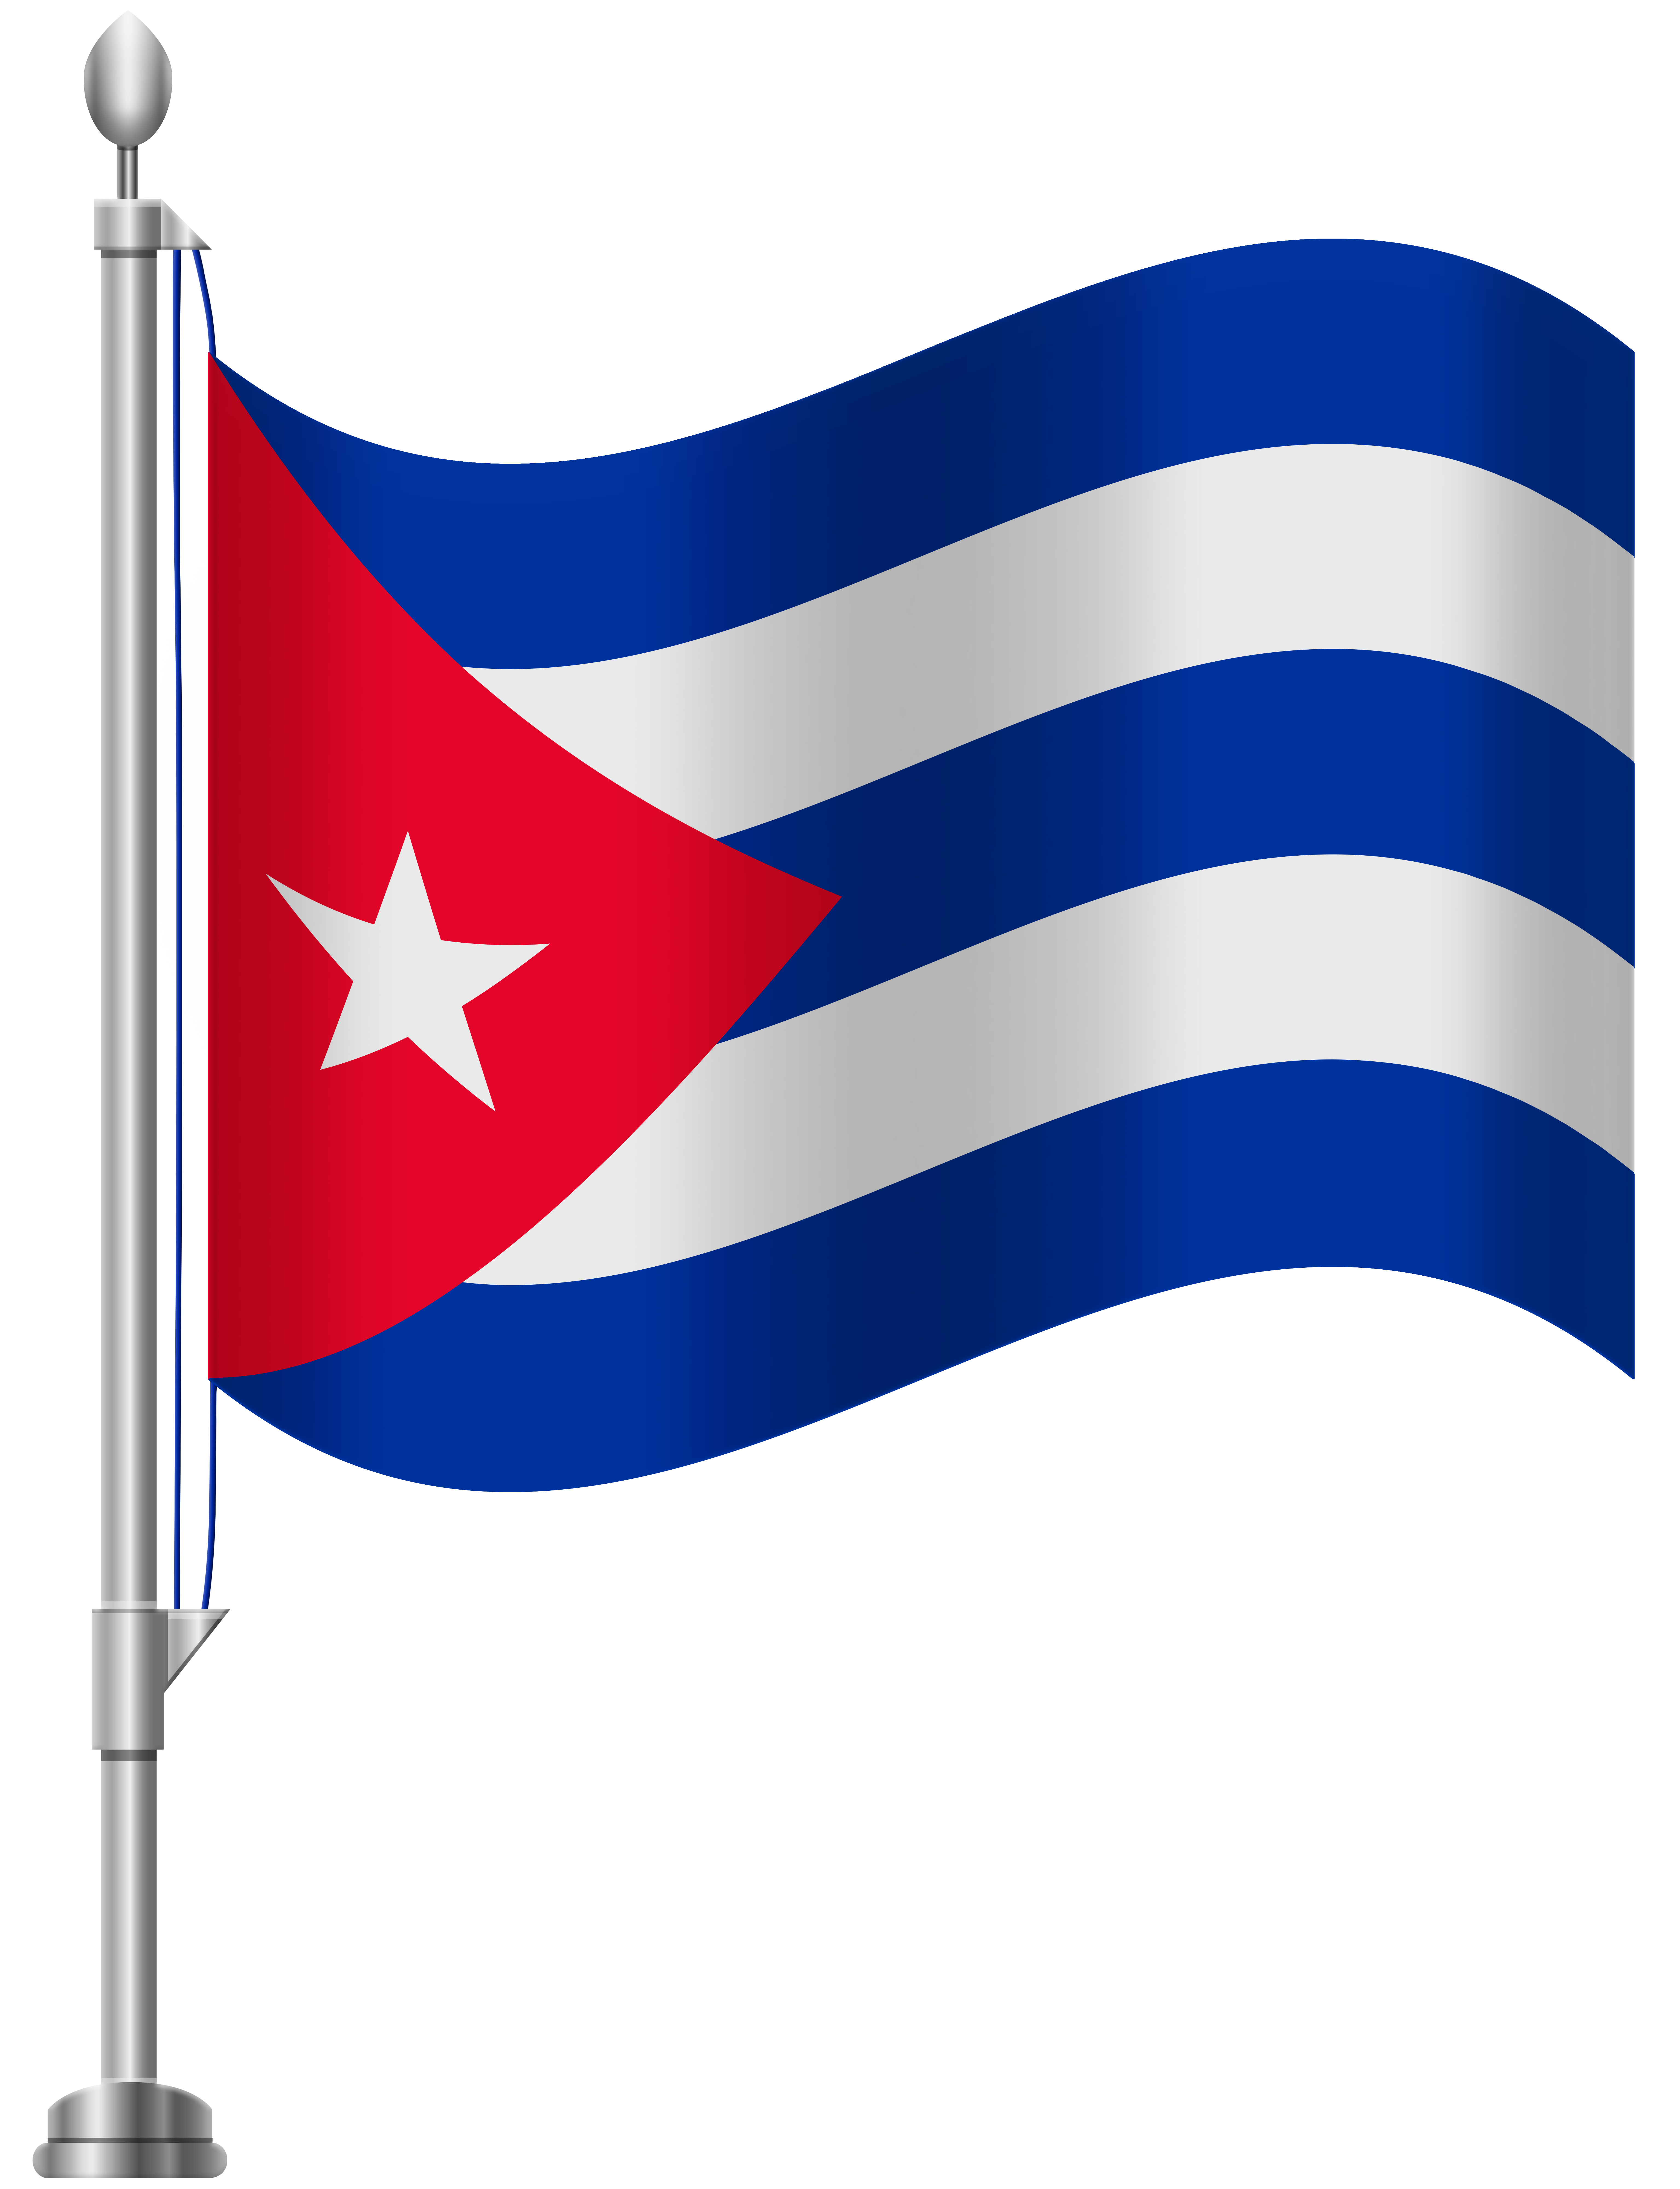 Puerto rican flag png. Rico clip art best